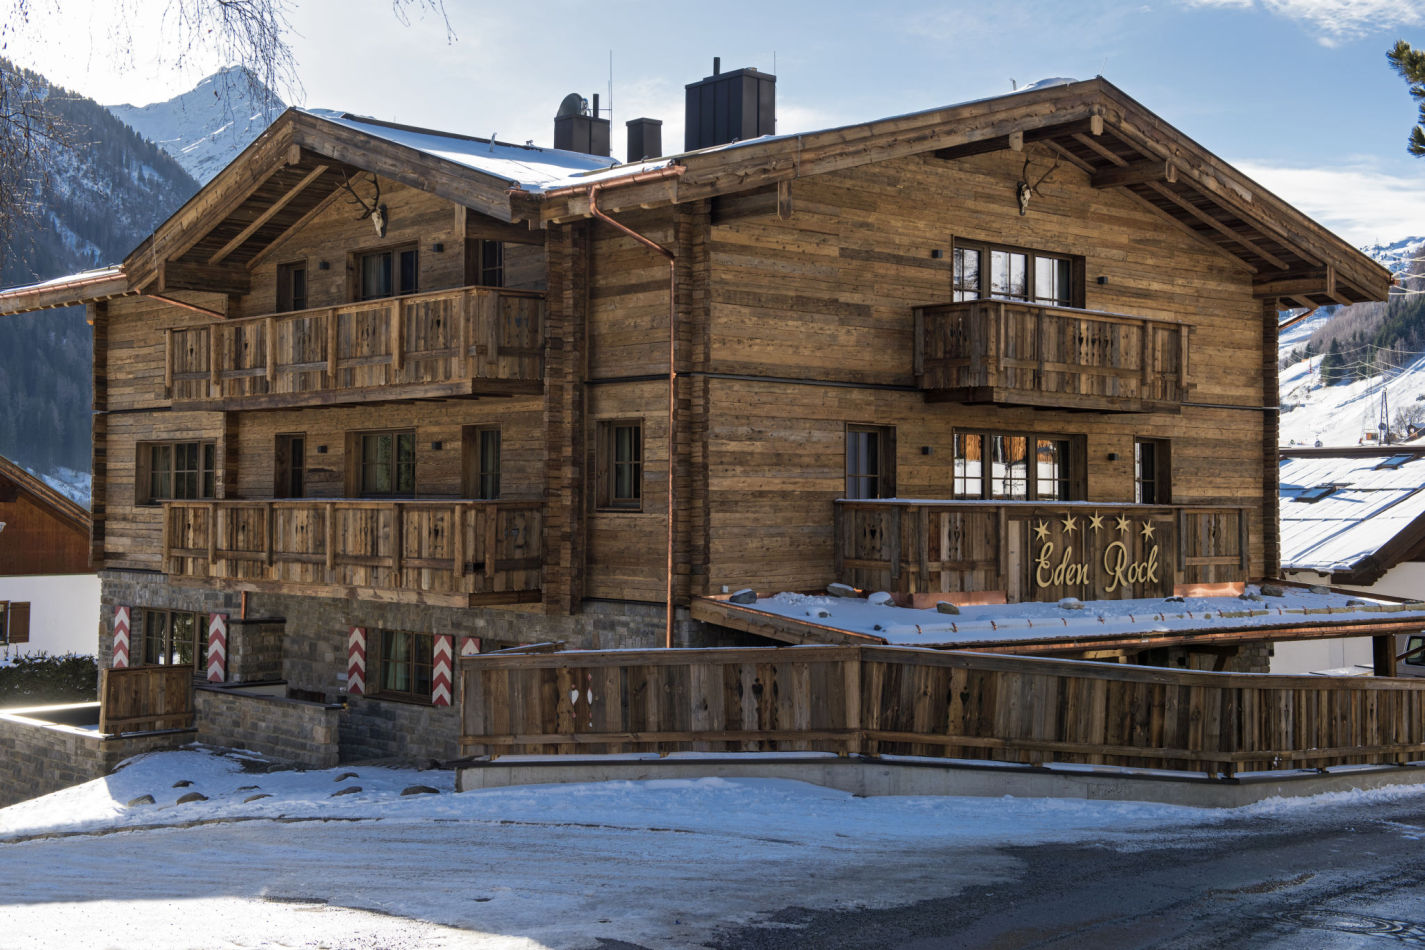 Chalet Eden Rock, view from the snow-covered exterior